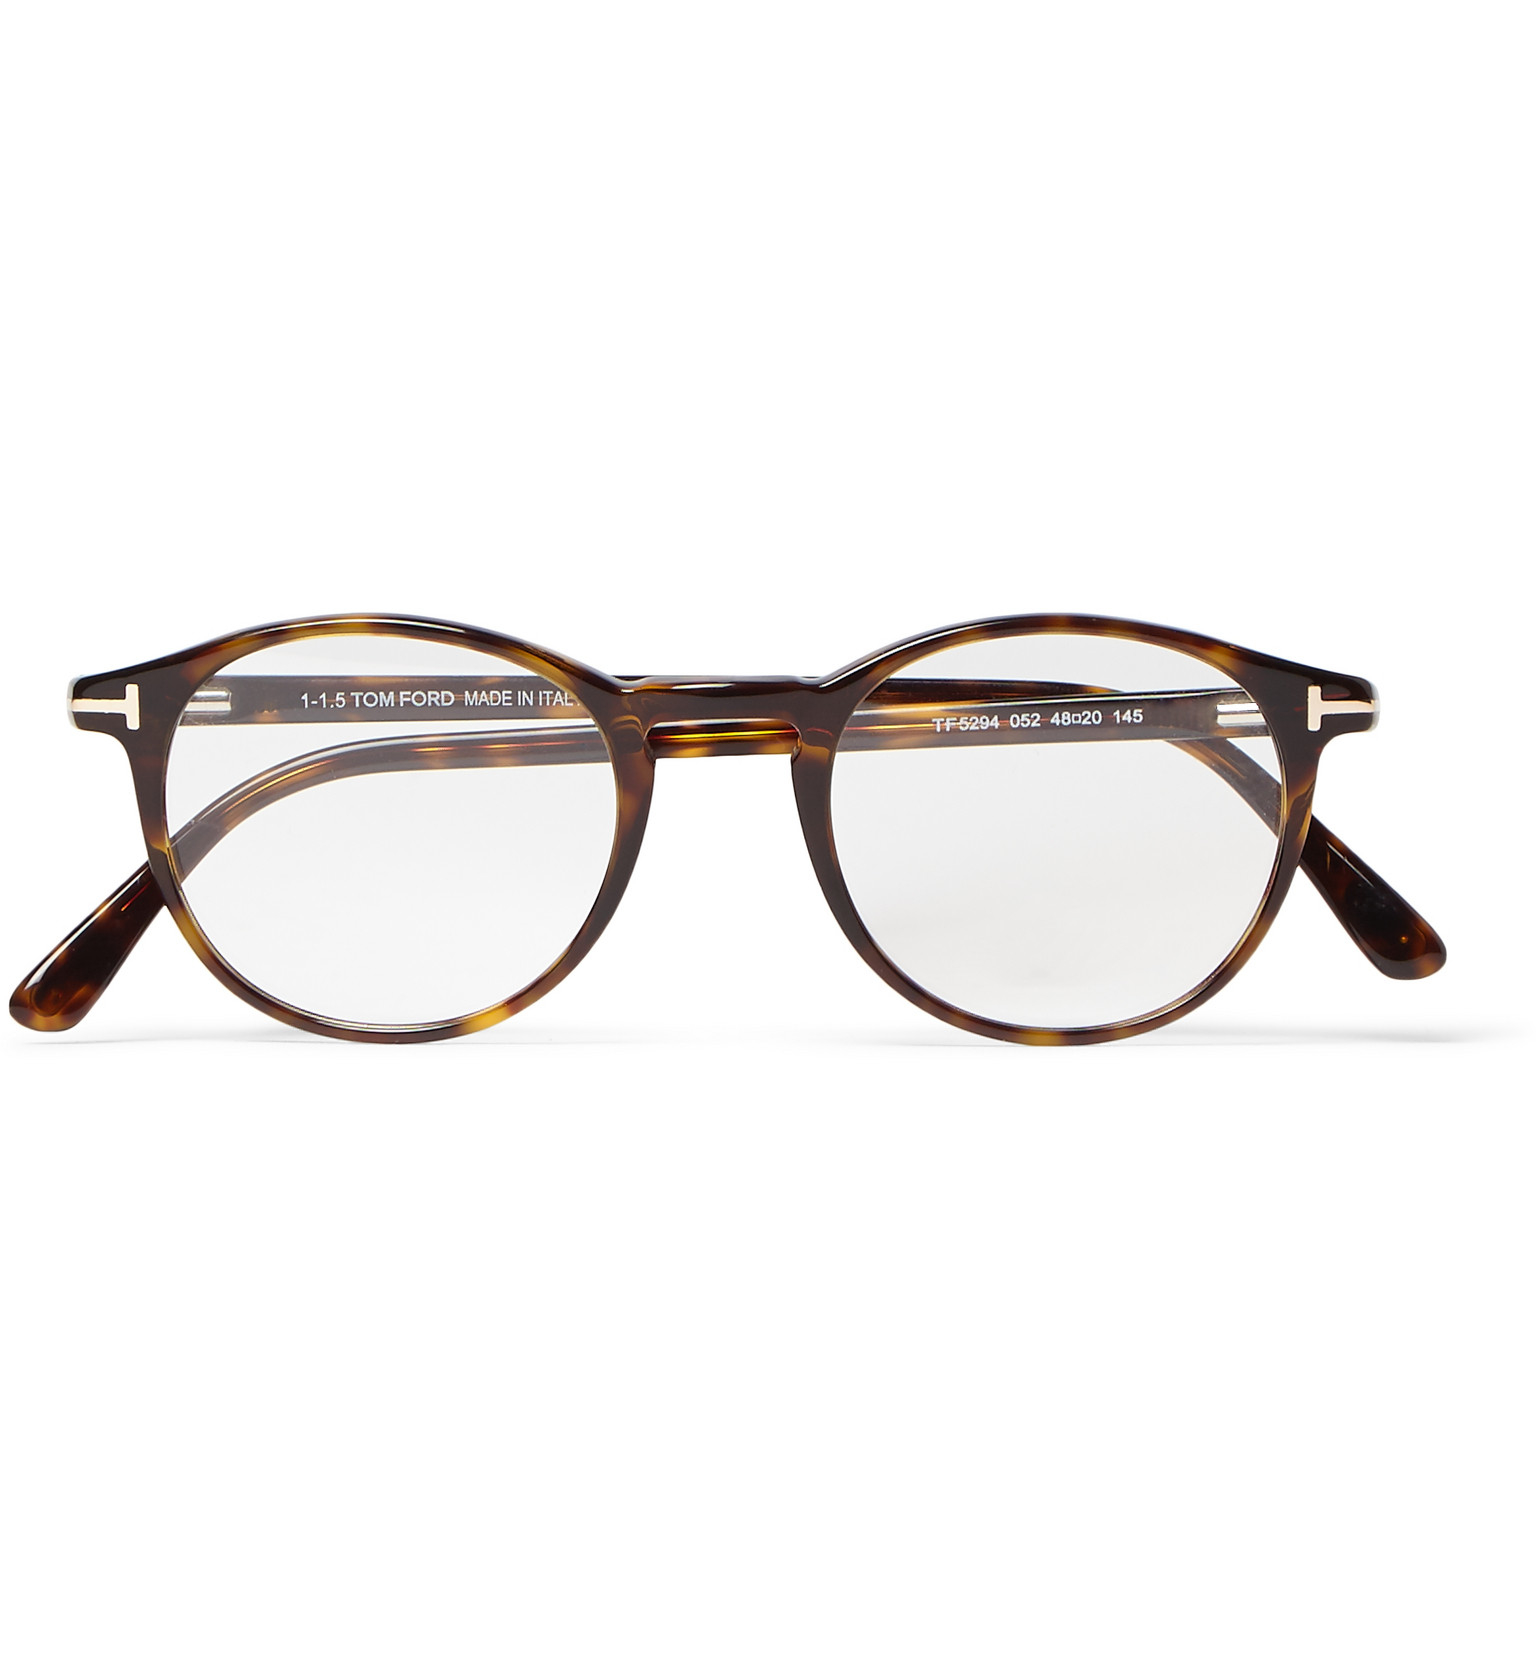 Tom ford Round-frame Tortoiseshell Acetate Optical Glasses ...